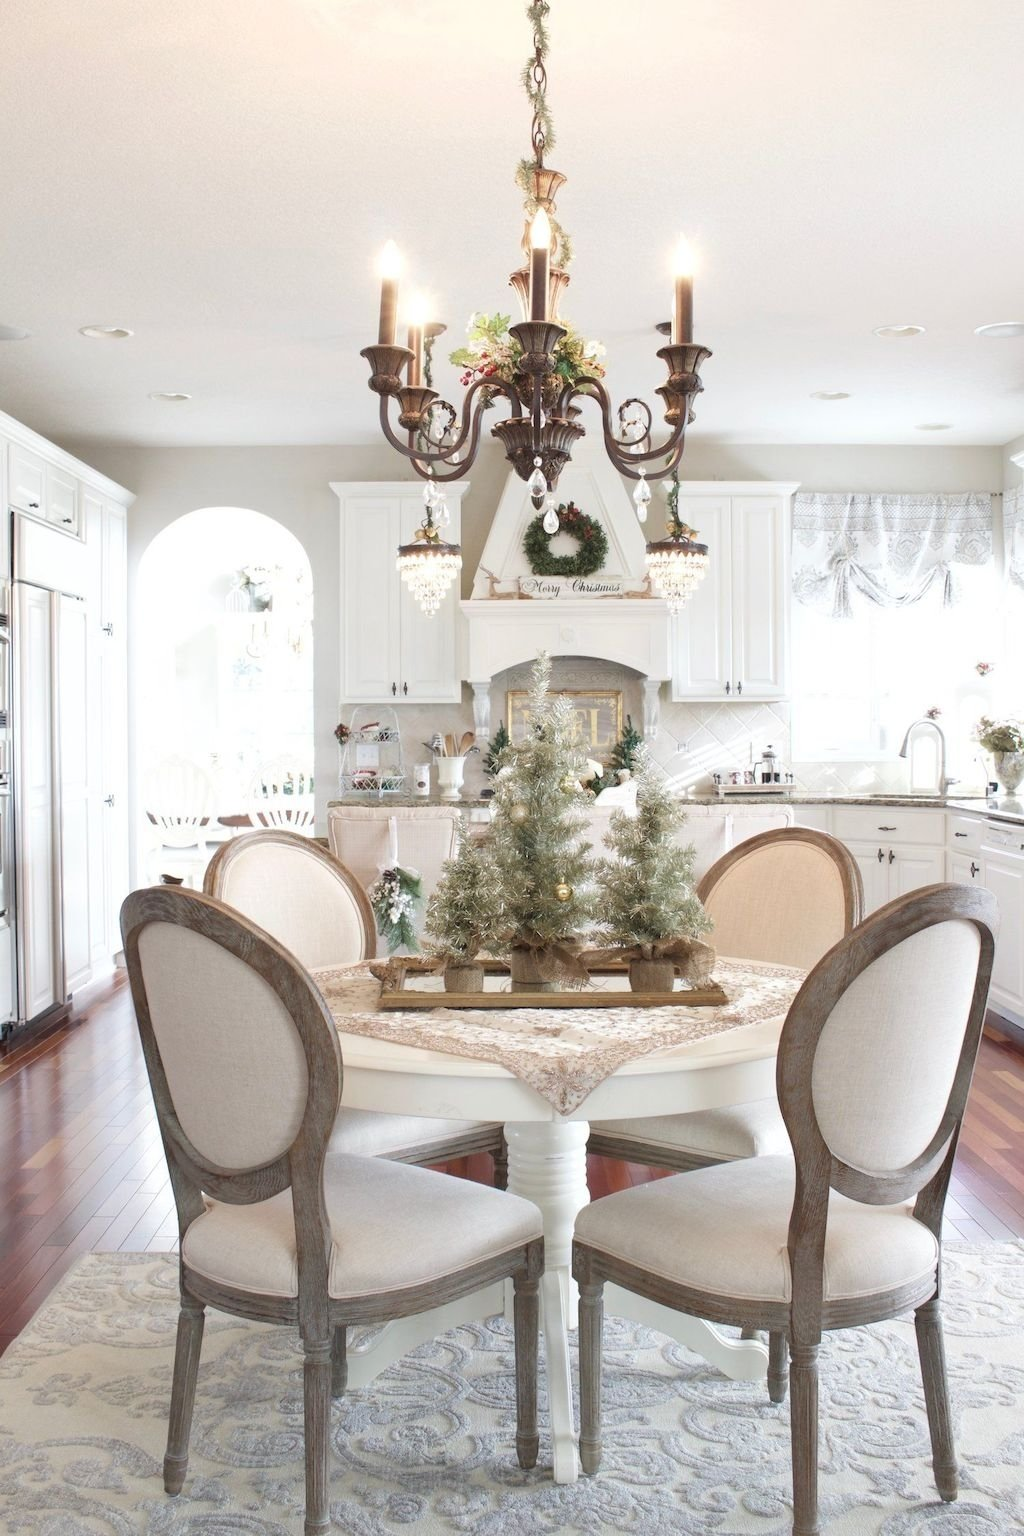 10 Perfect French Country Dining Room Ideas 80 amazing french country dining room decor ideas decoremodel 2021